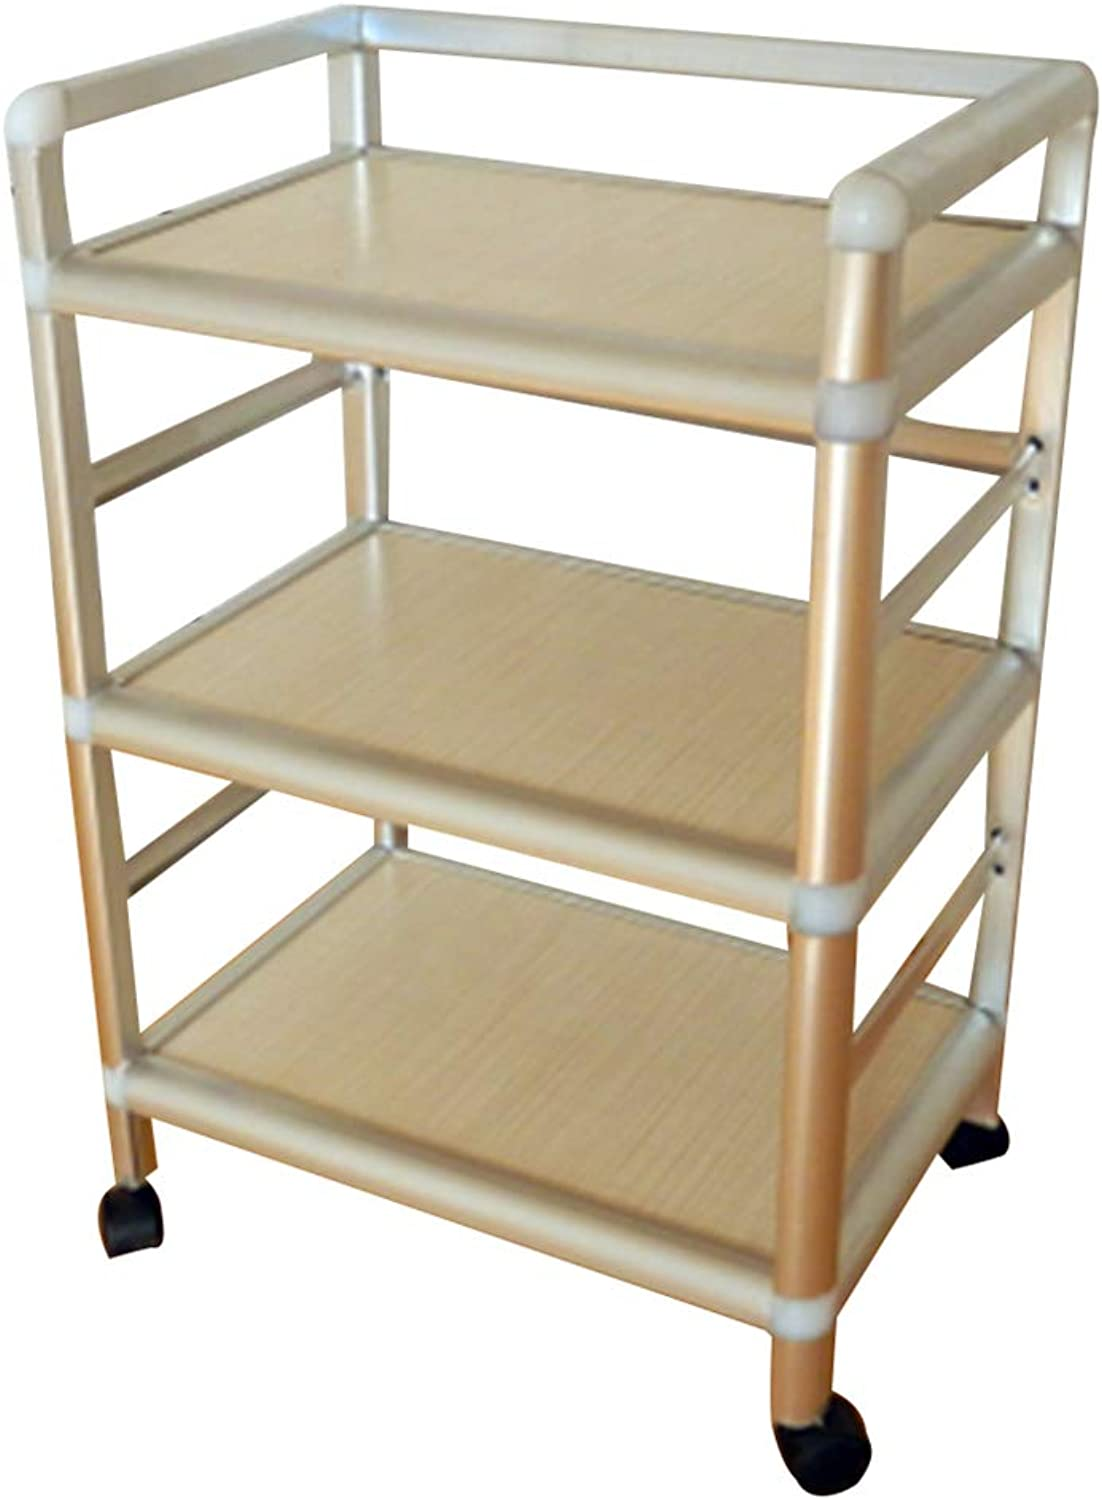 Serving Trolley Cart Kitchen Mobile Stainless Steel Solid Wood Organizer Universal Wheel 3 Tier Storage, Carrying Capacity 40 Kg, 2 Sizes (color   A-43 x 30 x 65CM)